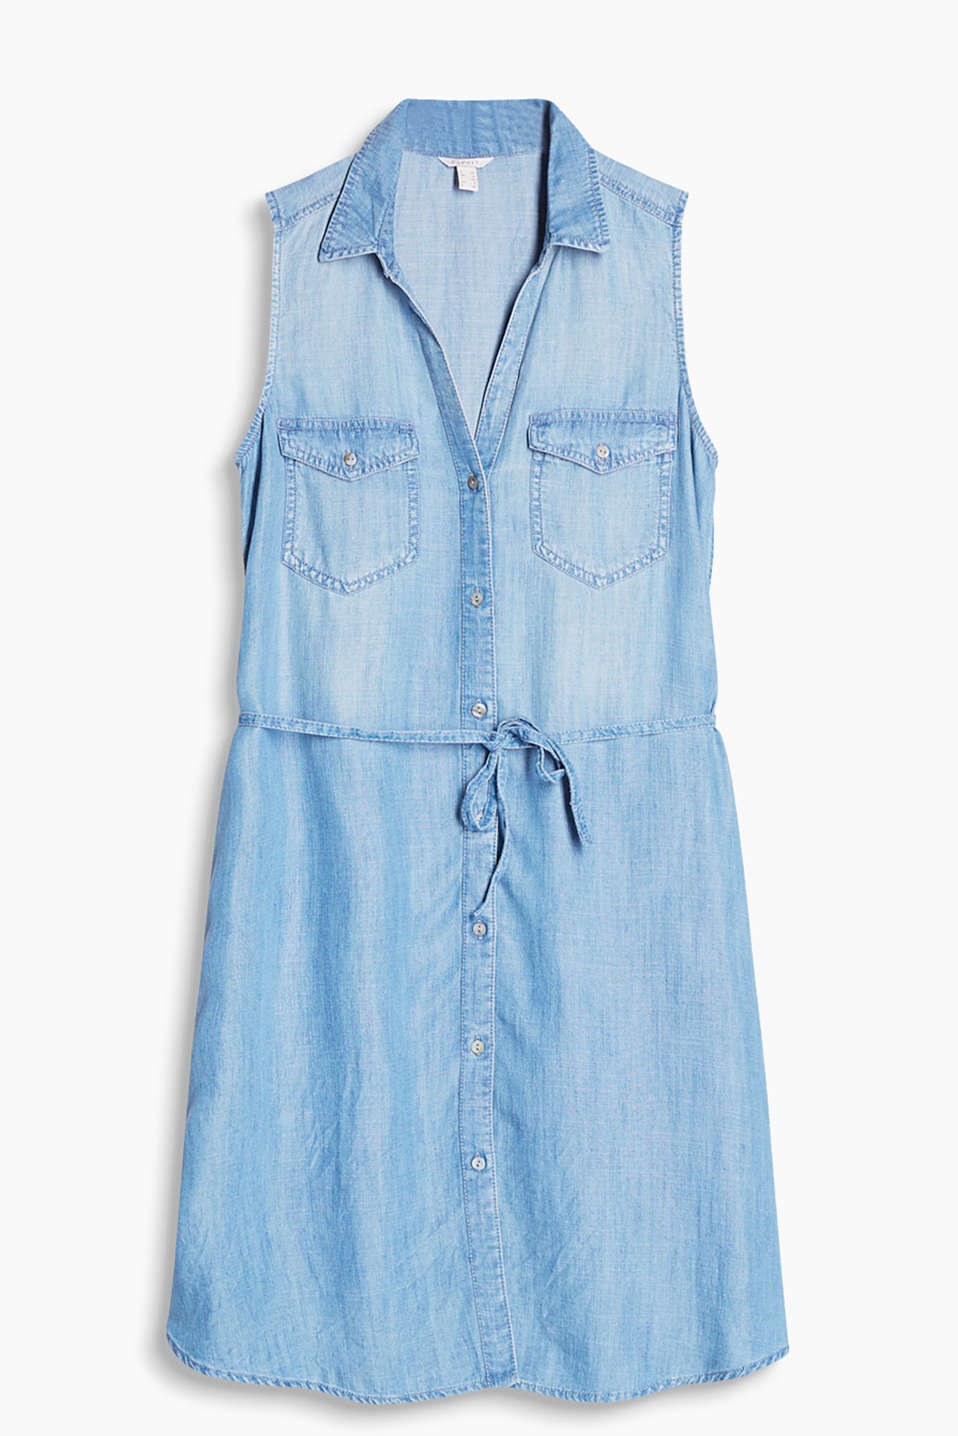 Simple dress in flowing denim with a breast pocket and tie-around belt